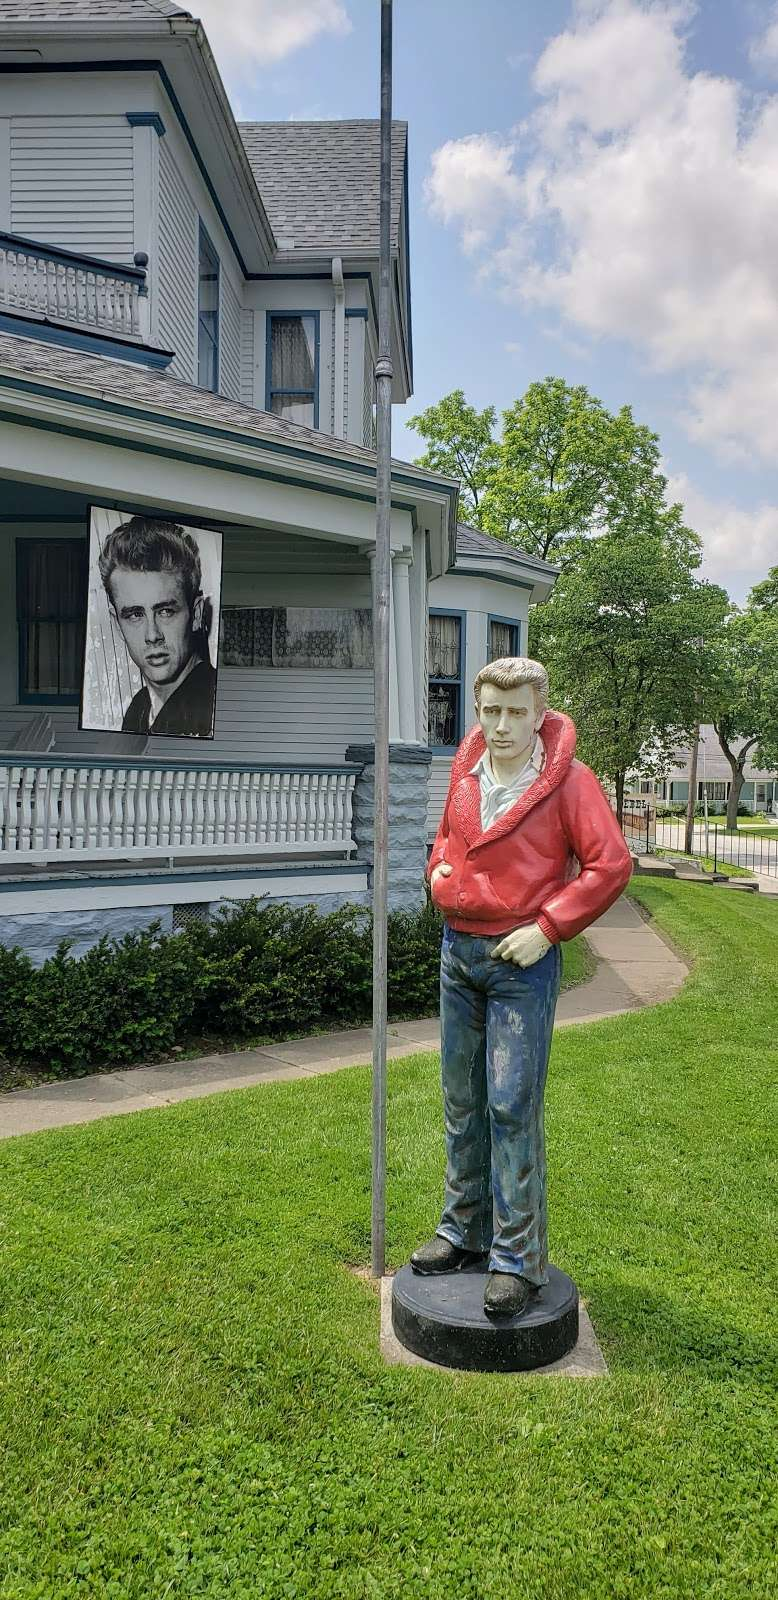 James Dean Gallery - museum  | Photo 4 of 9 | Address: 425 N Main St, Fairmount, IN 46928, USA | Phone: (765) 948-3326